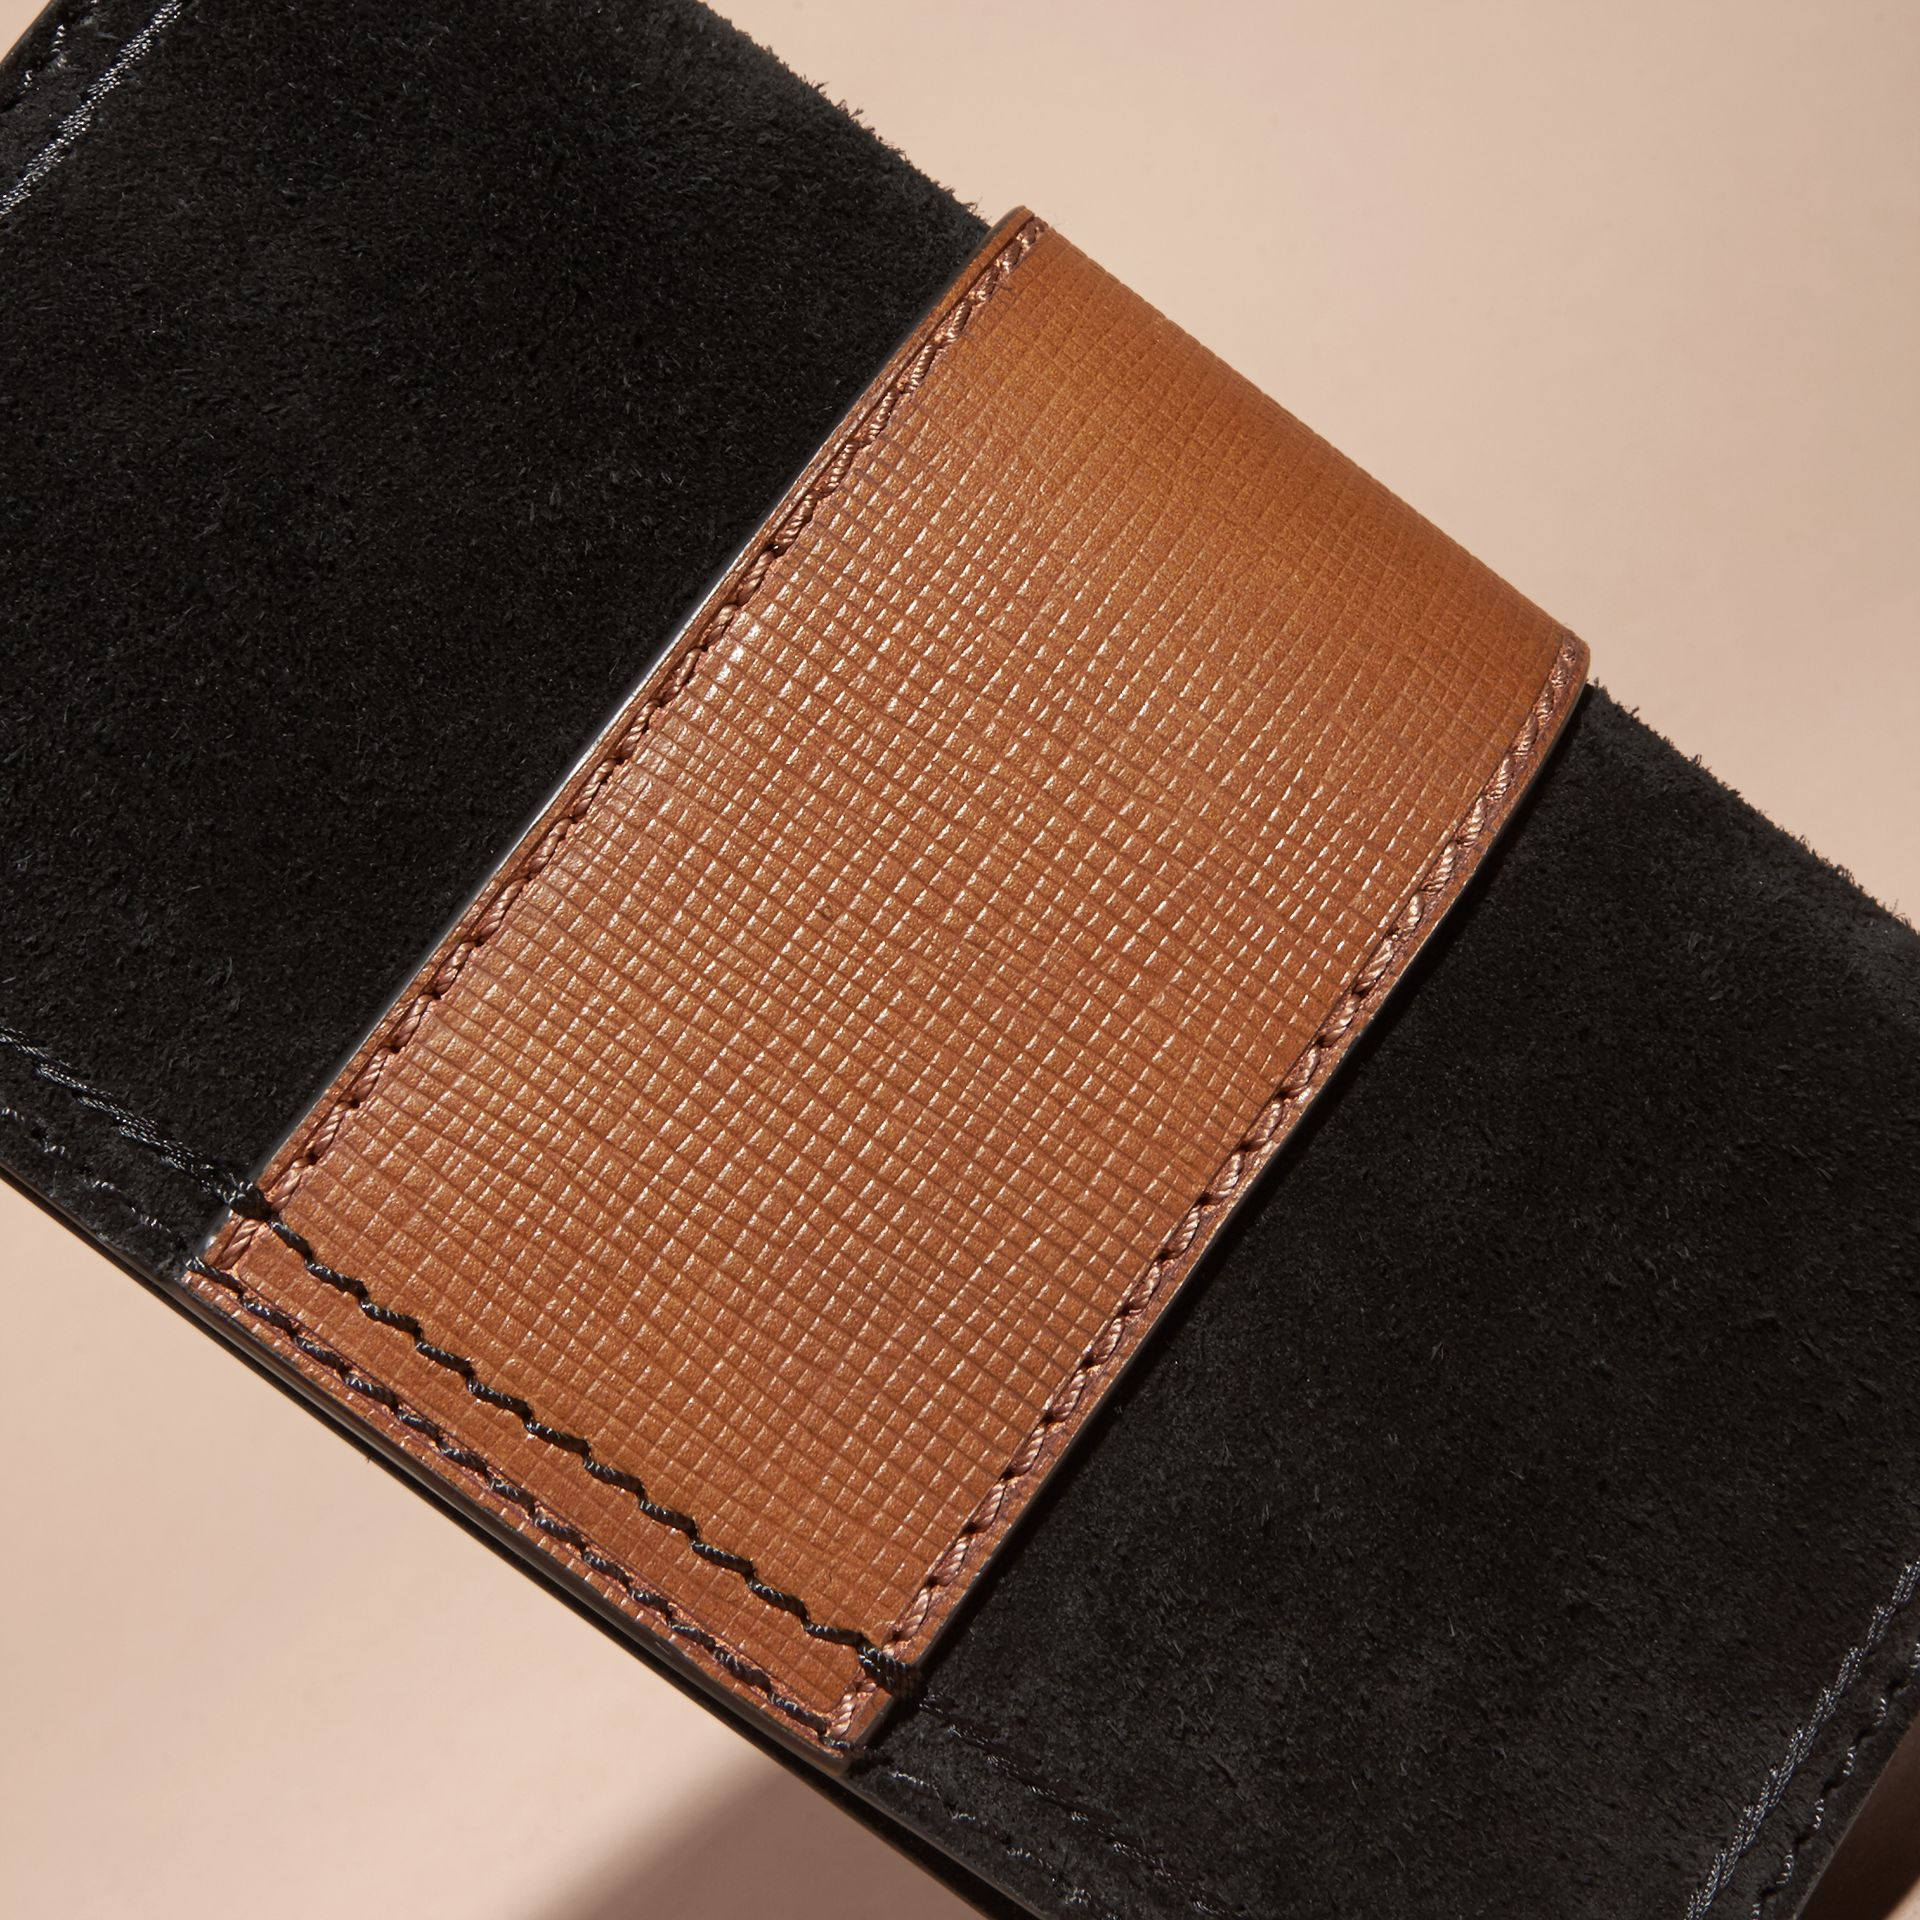 Black / tan The Small Buckle Bag in Suede with Topstitching Black / Tan - gallery image 7